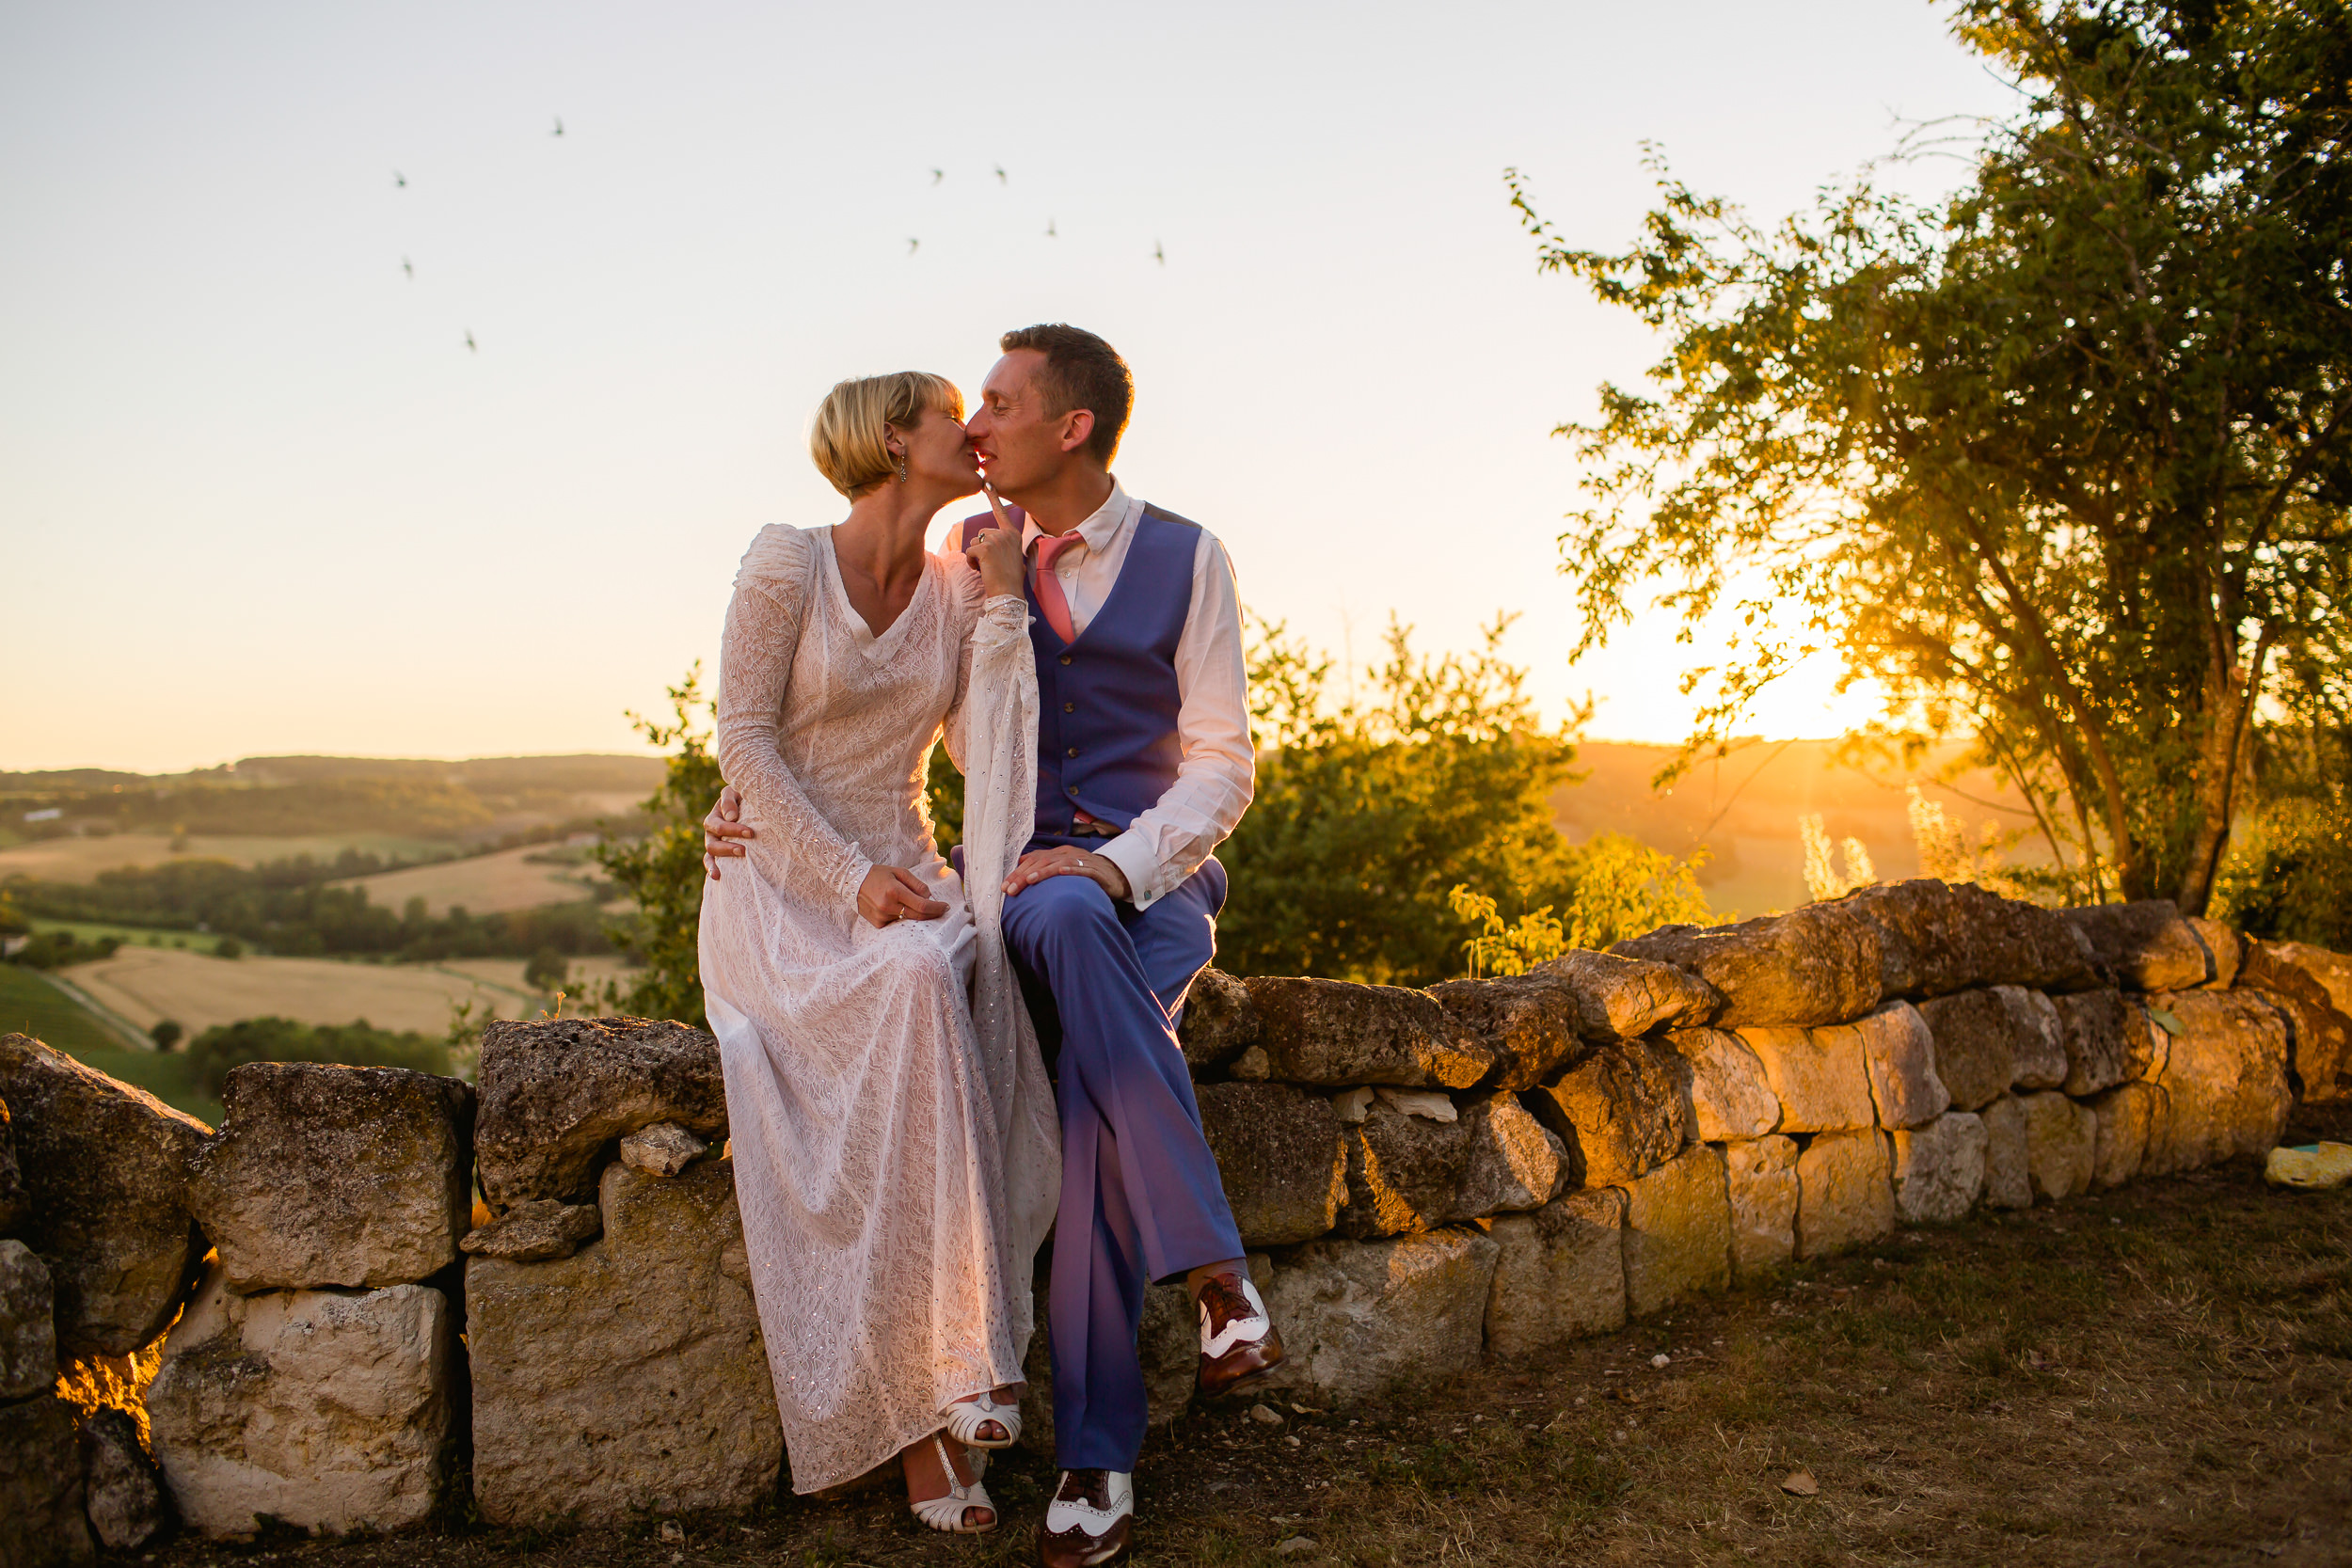 Sunset wedding portraits - wedding photography at Castelnau Des Fieumarcon -